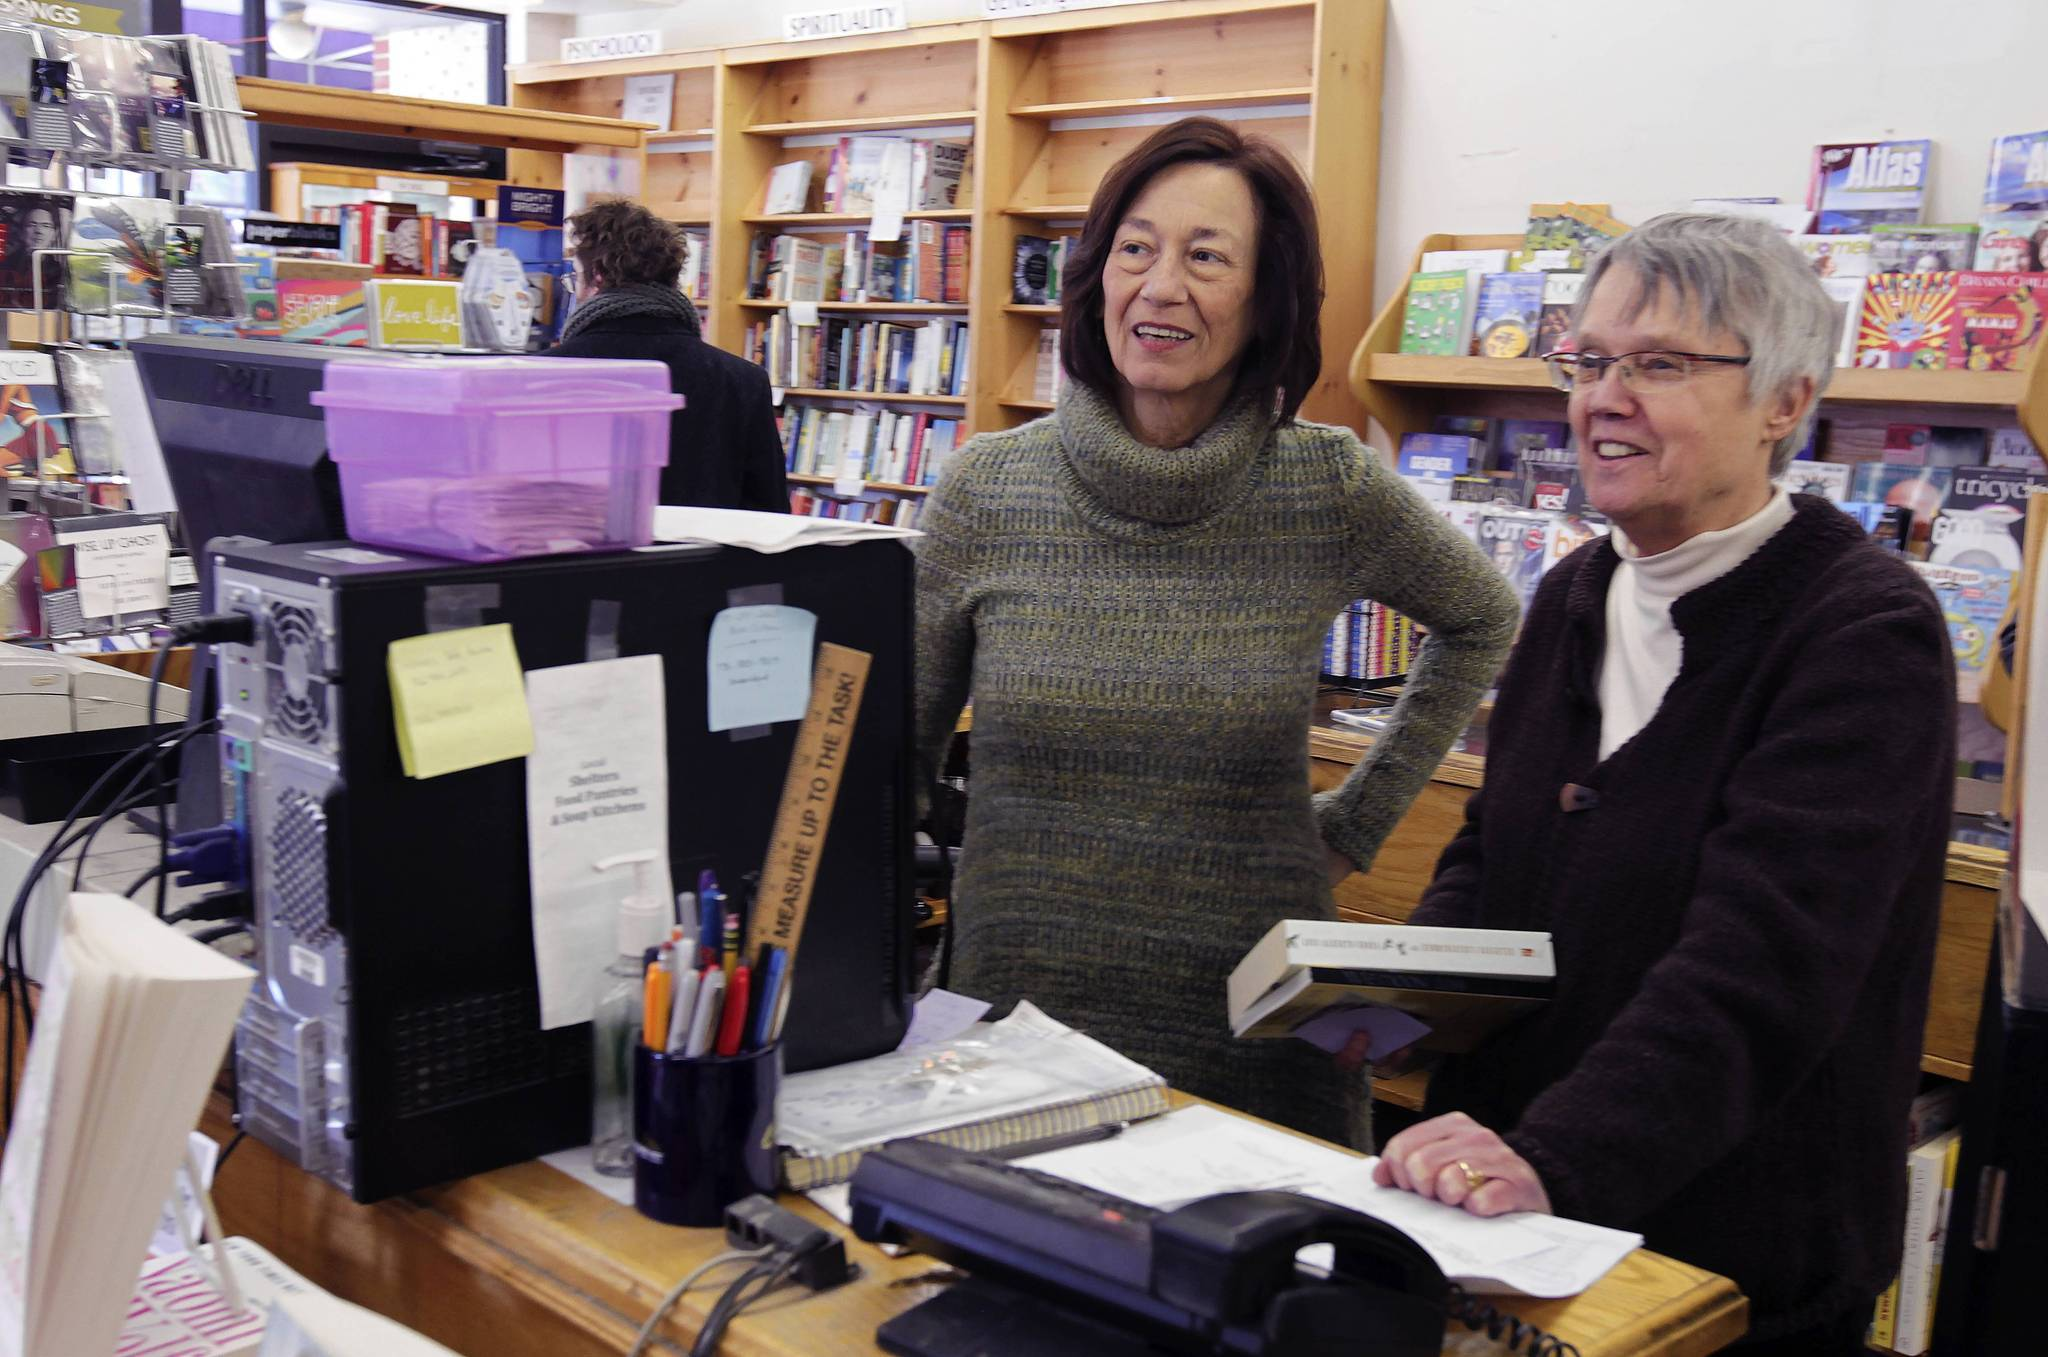 Linda Bubon, left, and Ann Christopherson, owners of Women & Children First book store.